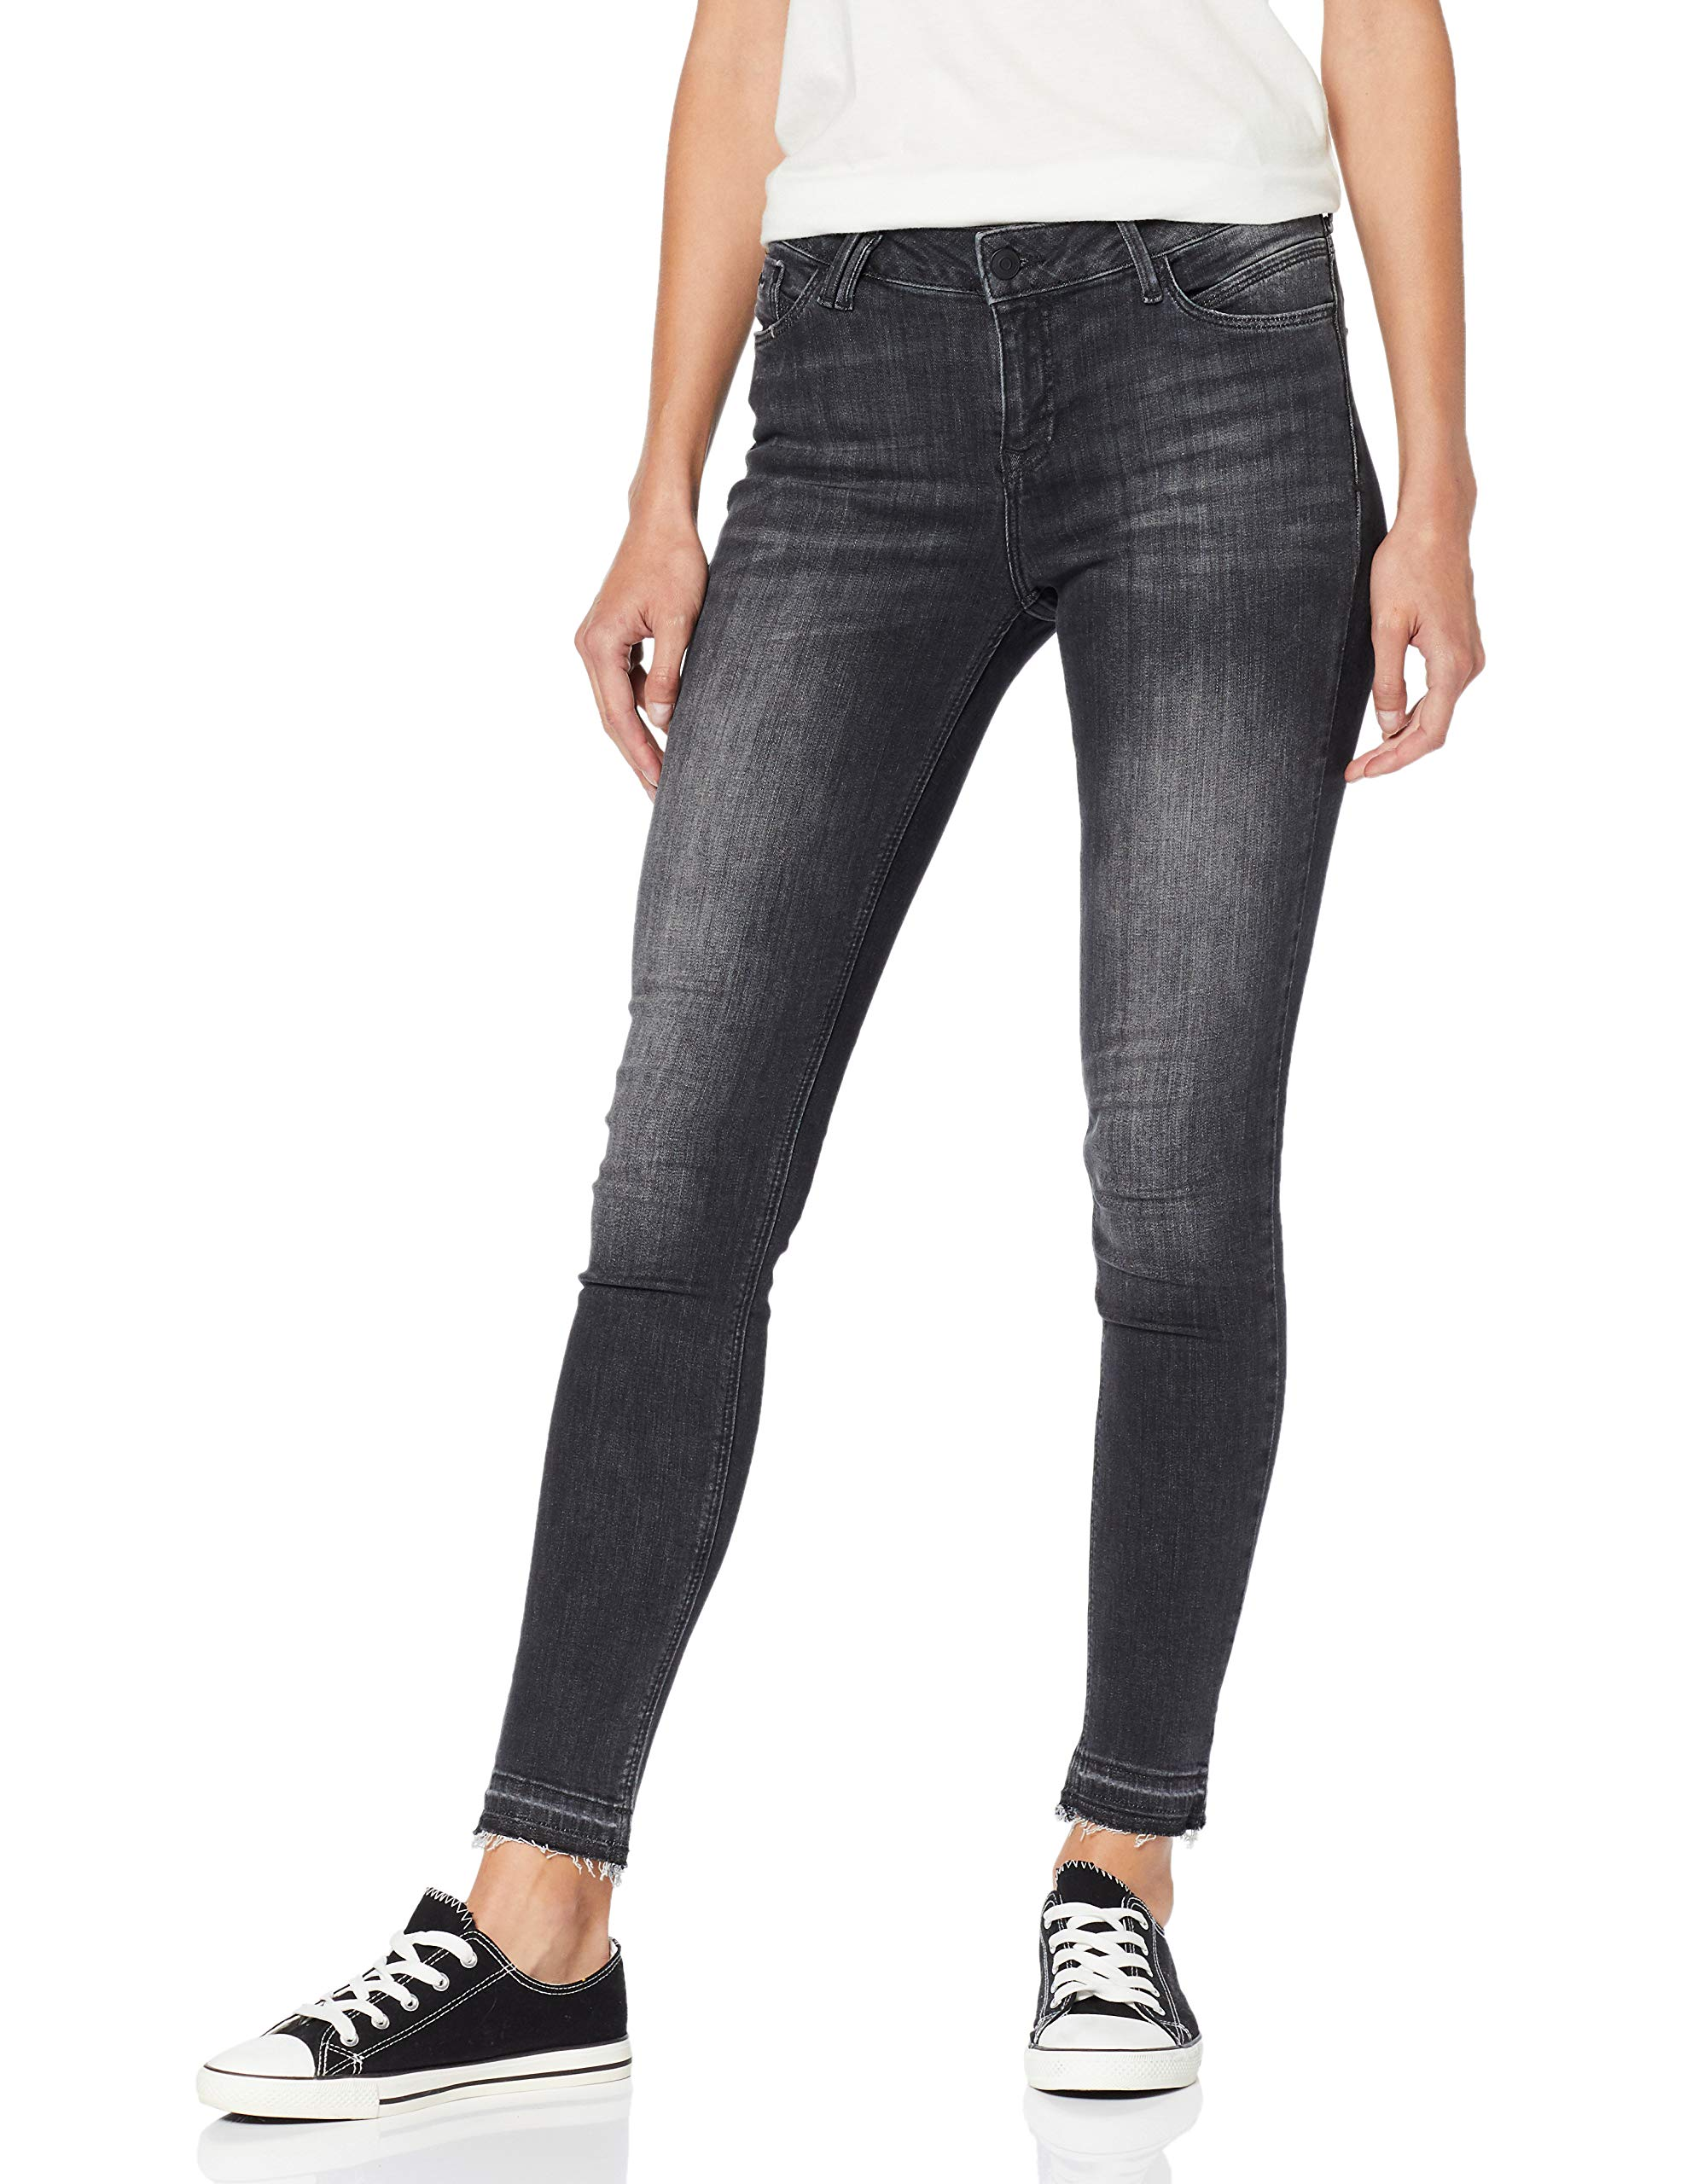 01138taille Fabricant29Femme Jean Used Cross Jeans Giselle SkinnyNoirblack vn0wmN8